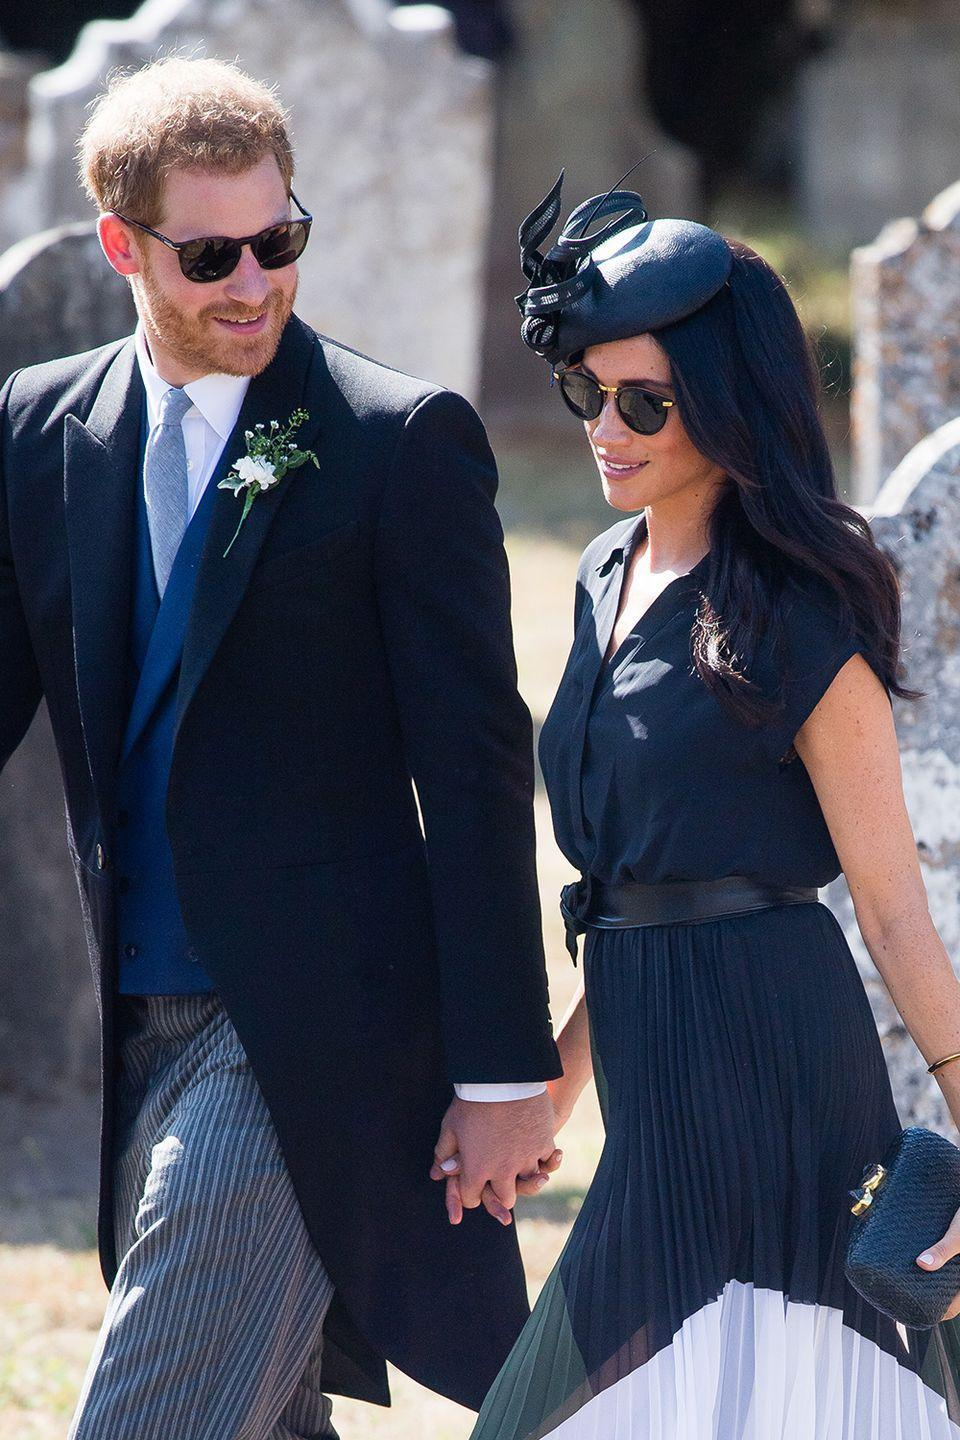 <p>Back we go to the very beginning of Meghan and Harry's first pregnancy... On Meghan's 37th birthday in early August, she and Harry attended the wedding of Charlie van Straubenzee and Daisy Jenks. Now we know when Archie was born - 6 May, 2019 - we can track back to the very early days of Meghan Markle's first pregnancy, which is around about this time. Being in the very first days of pregnancy, Meghan wasn't showing at all here.</p>